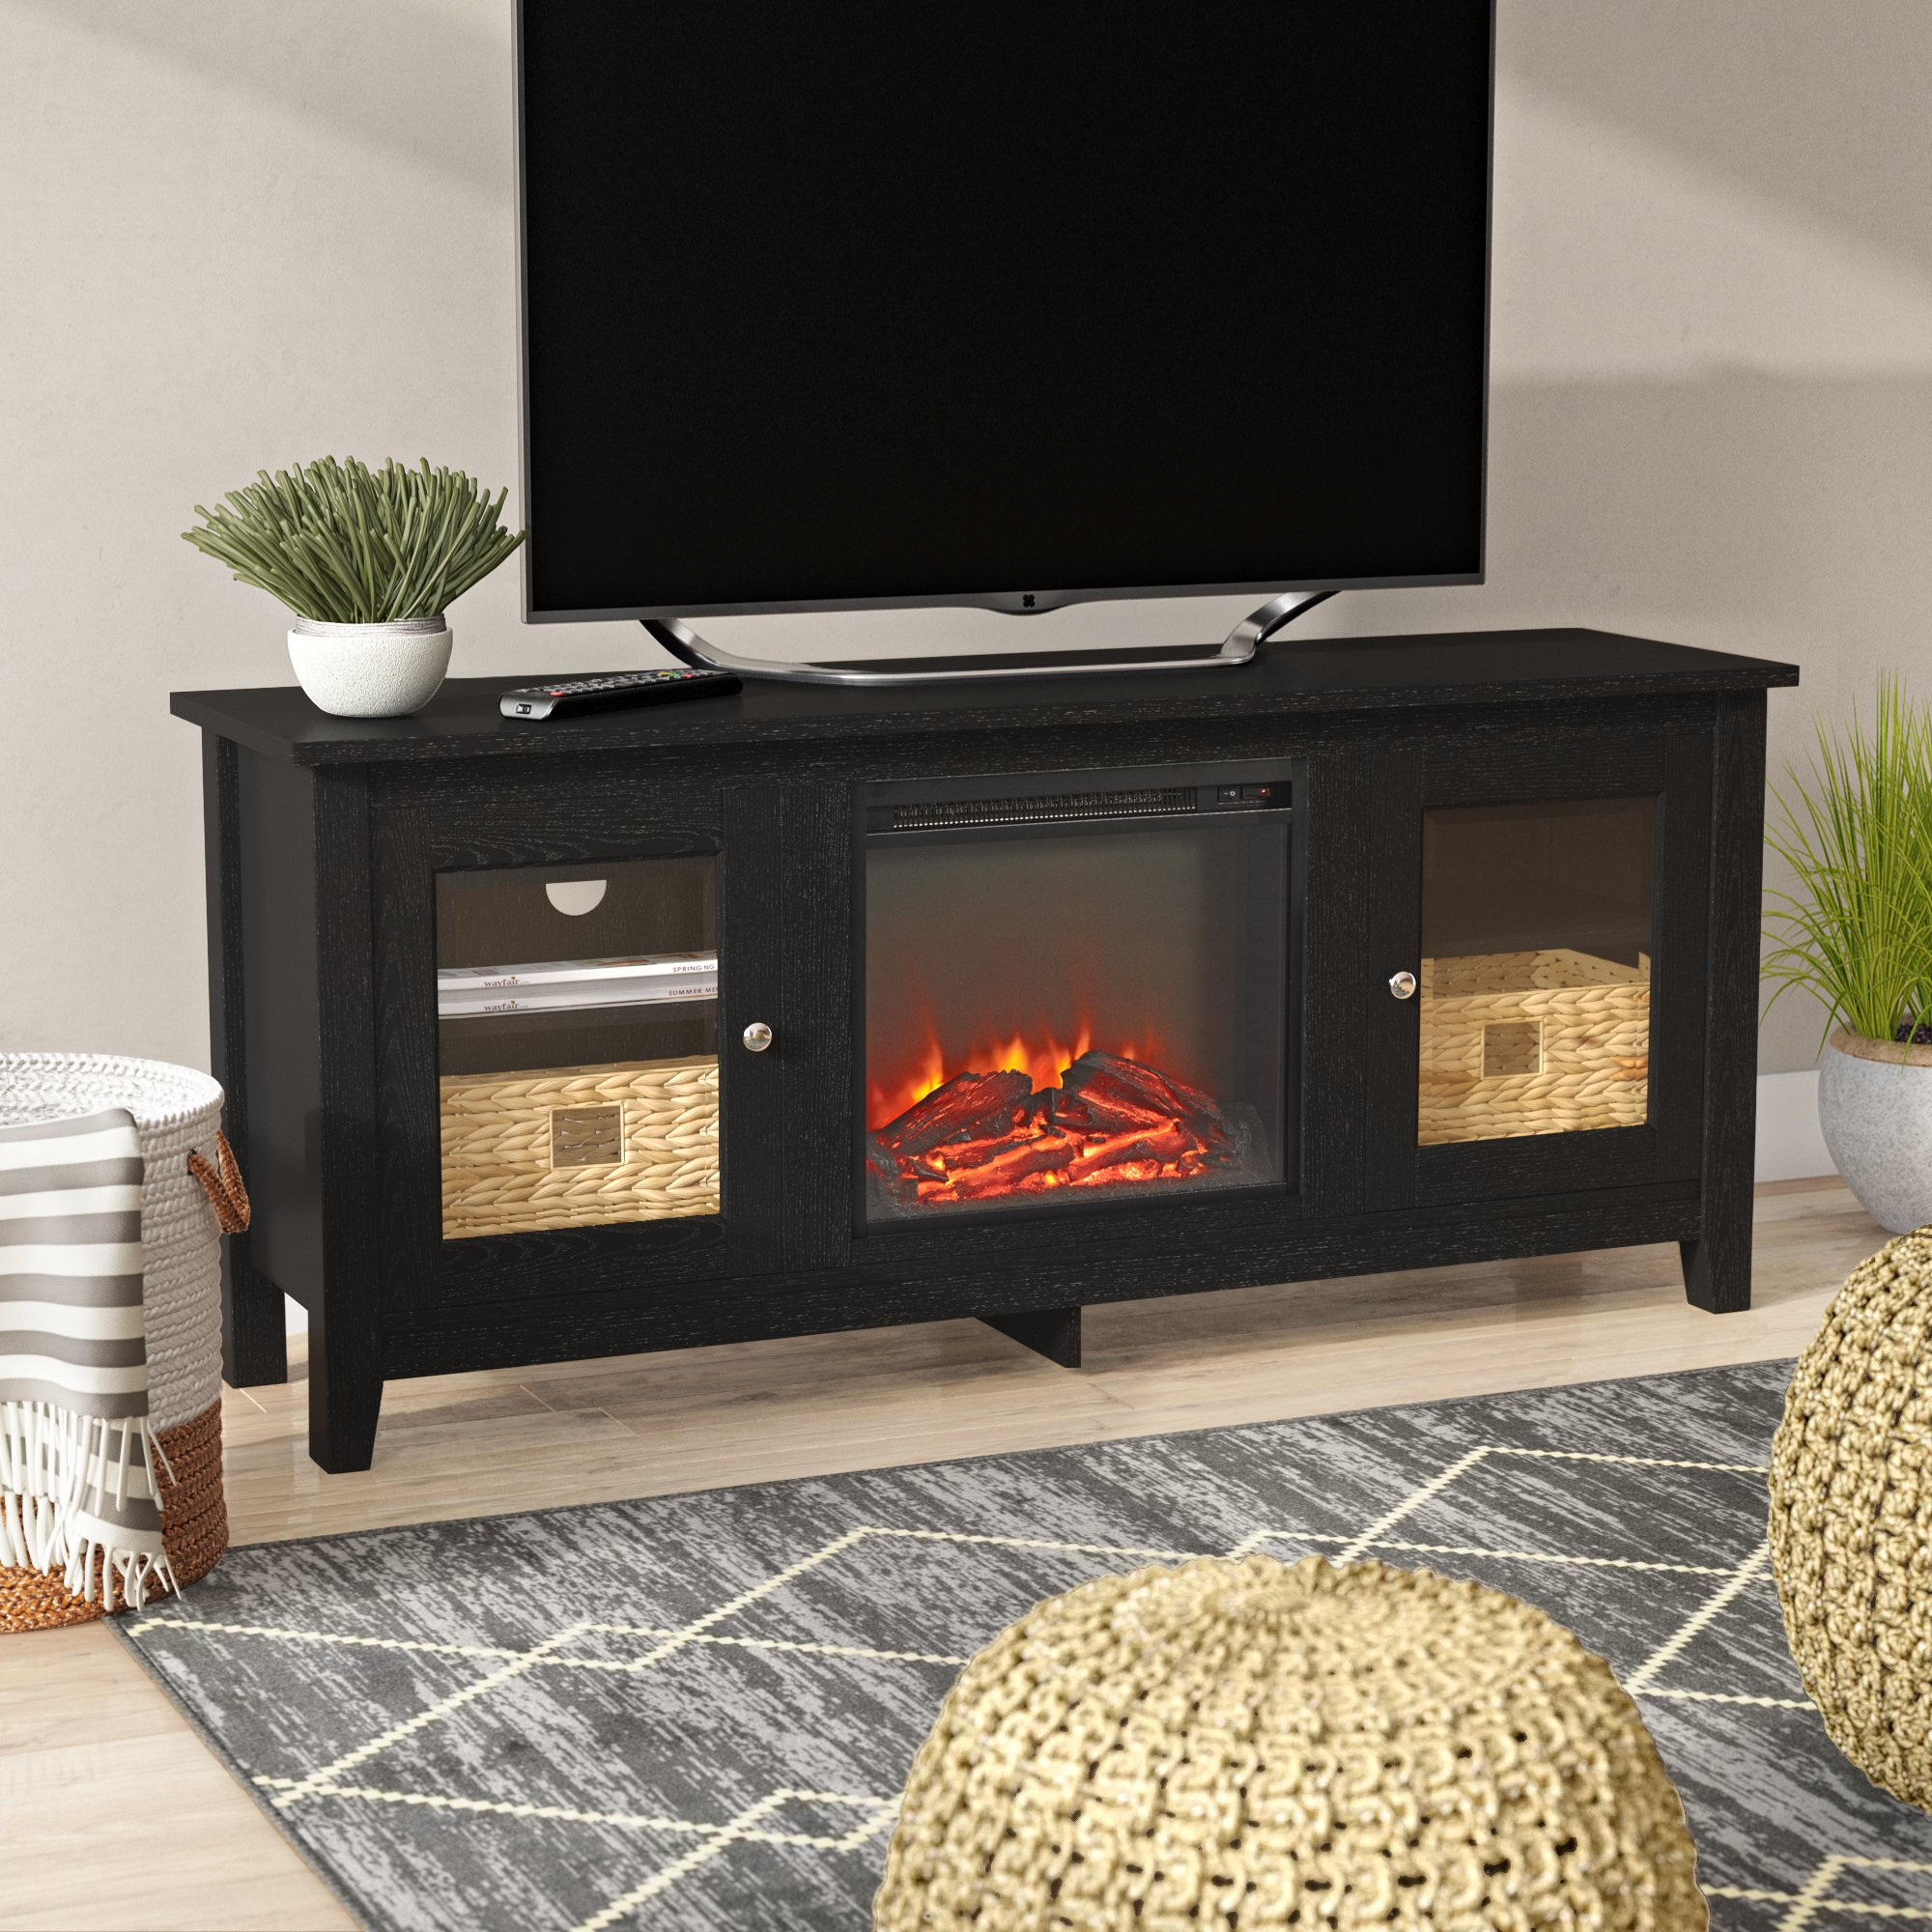 Fireplace Tv Stands & Entertainment Centers You'll Love | Wayfair.ca with regard to Sinclair Grey 54 Inch Tv Stands (Image 9 of 30)